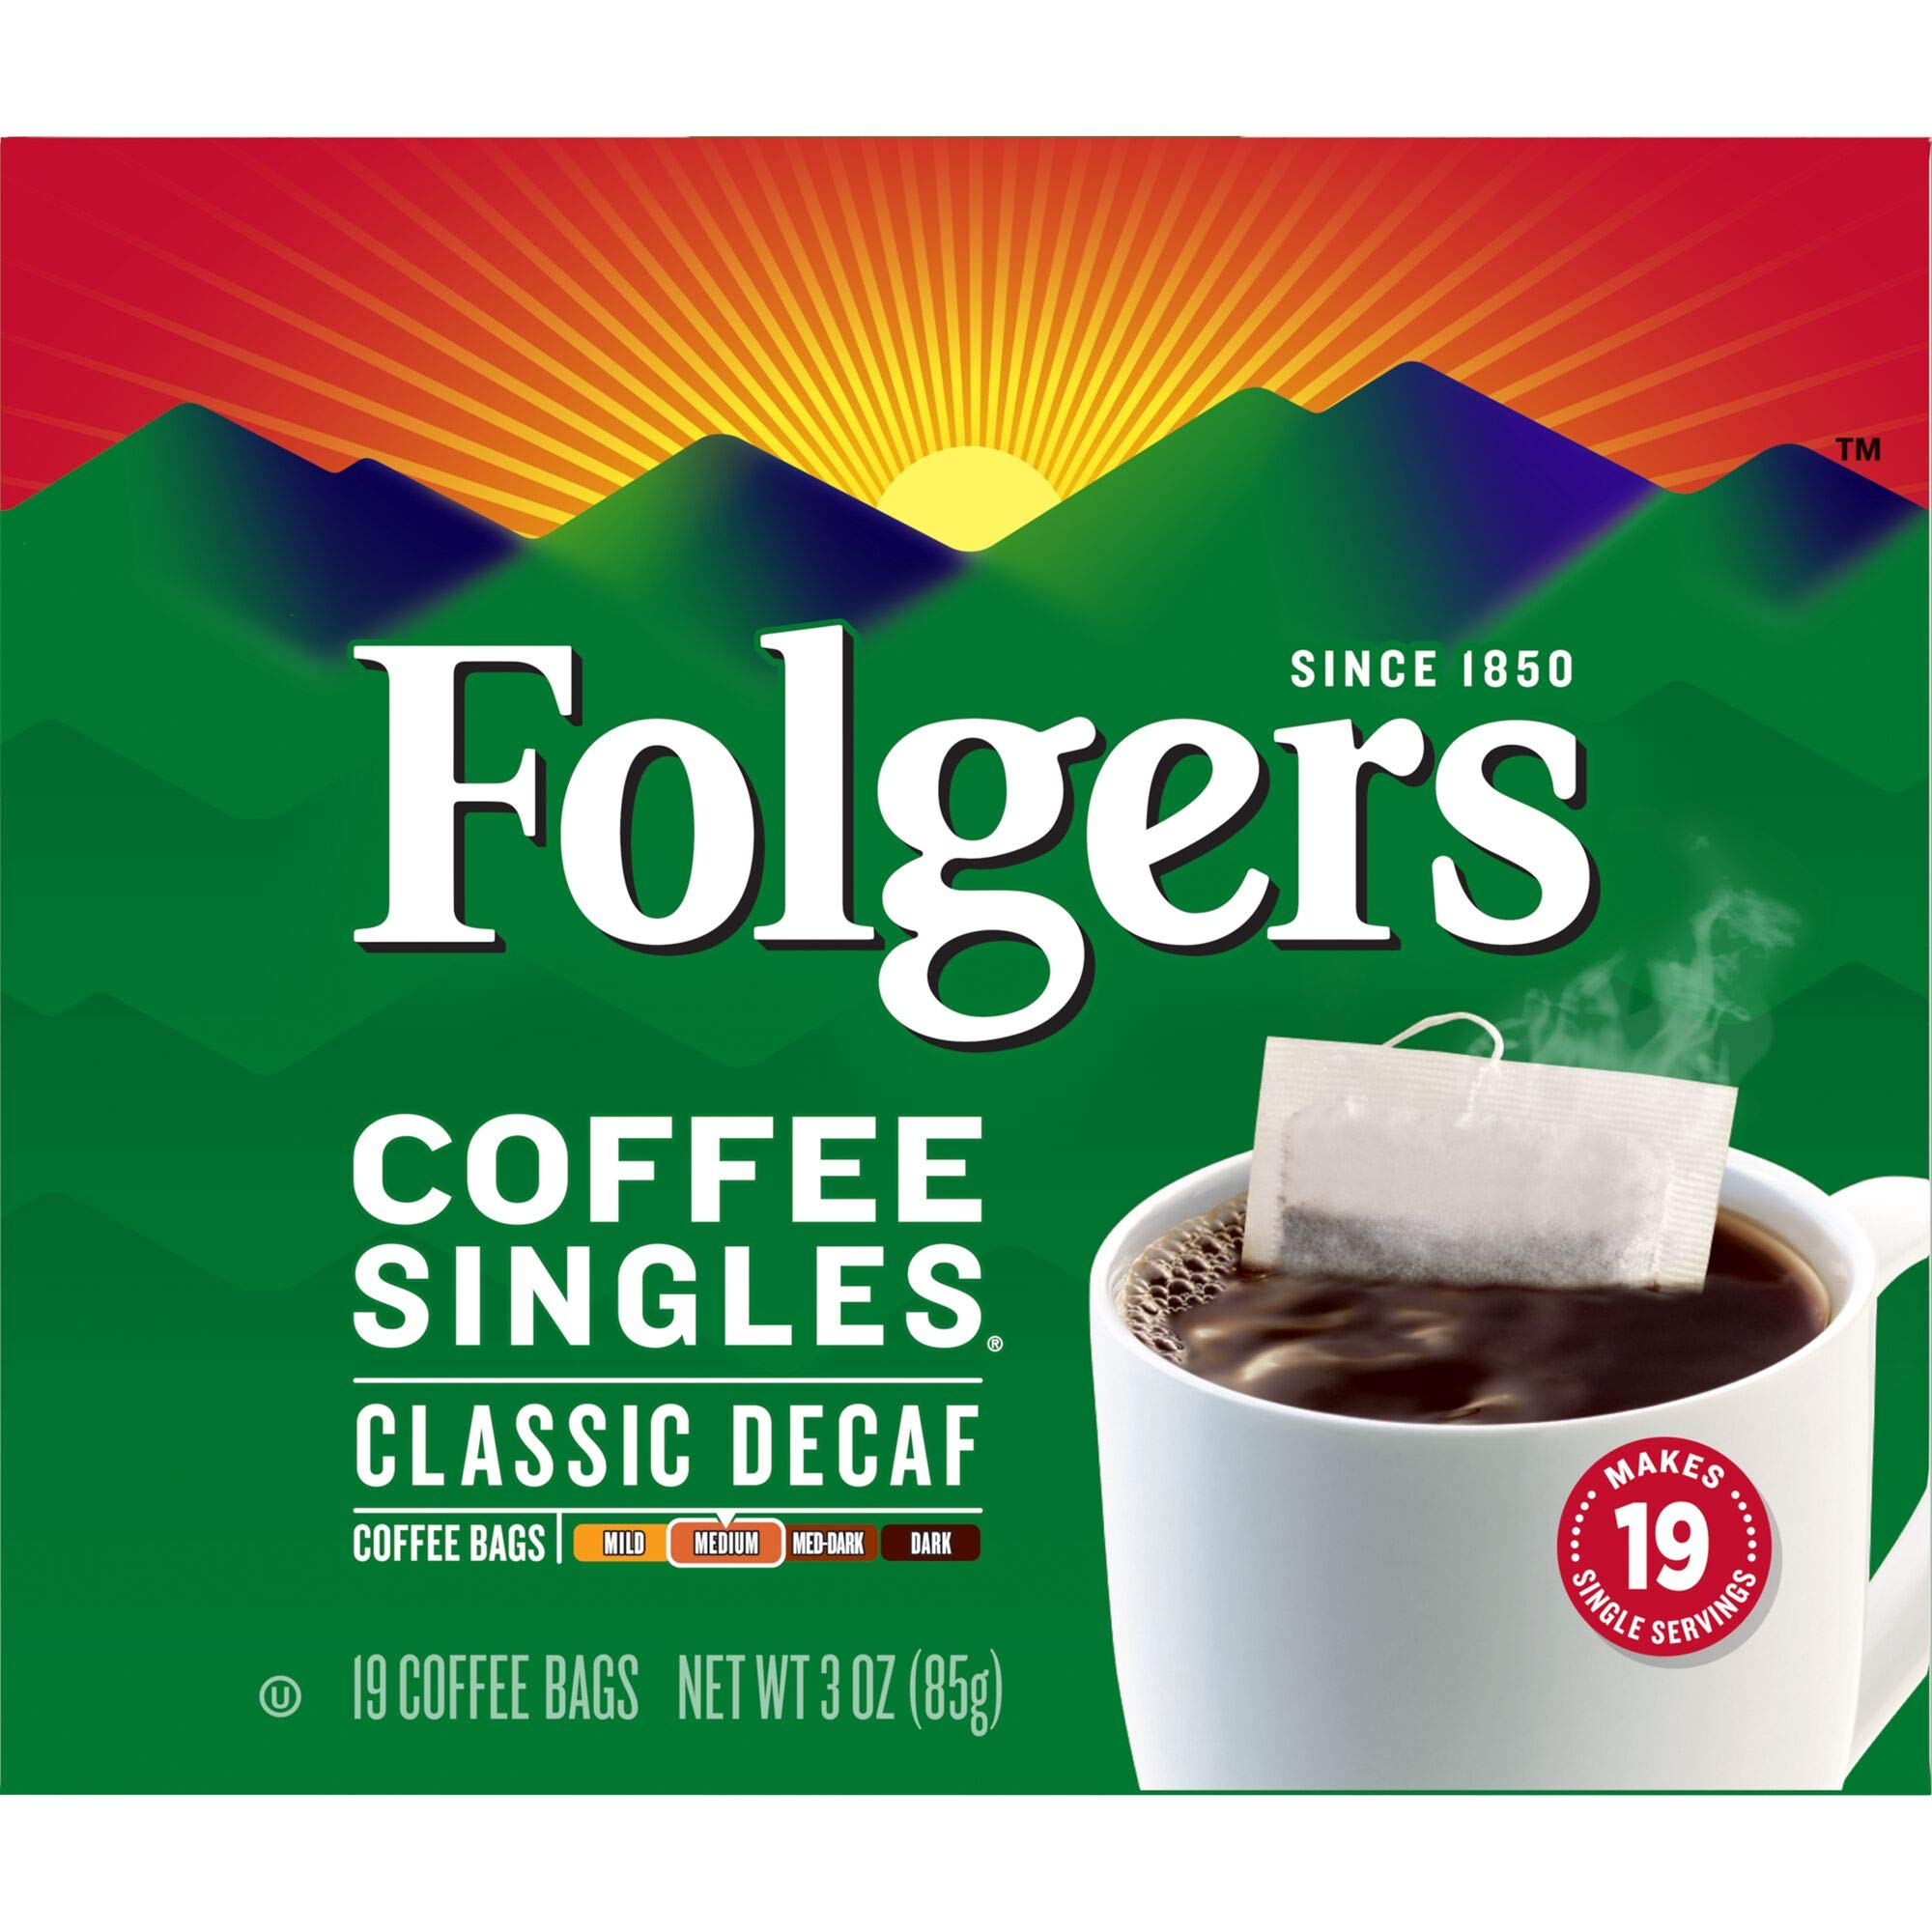 Folgers Classic Roast Decaffeinated Coffee Singles (Medium), 19 ct, 3 oz, Packaging May Vary by Folgers